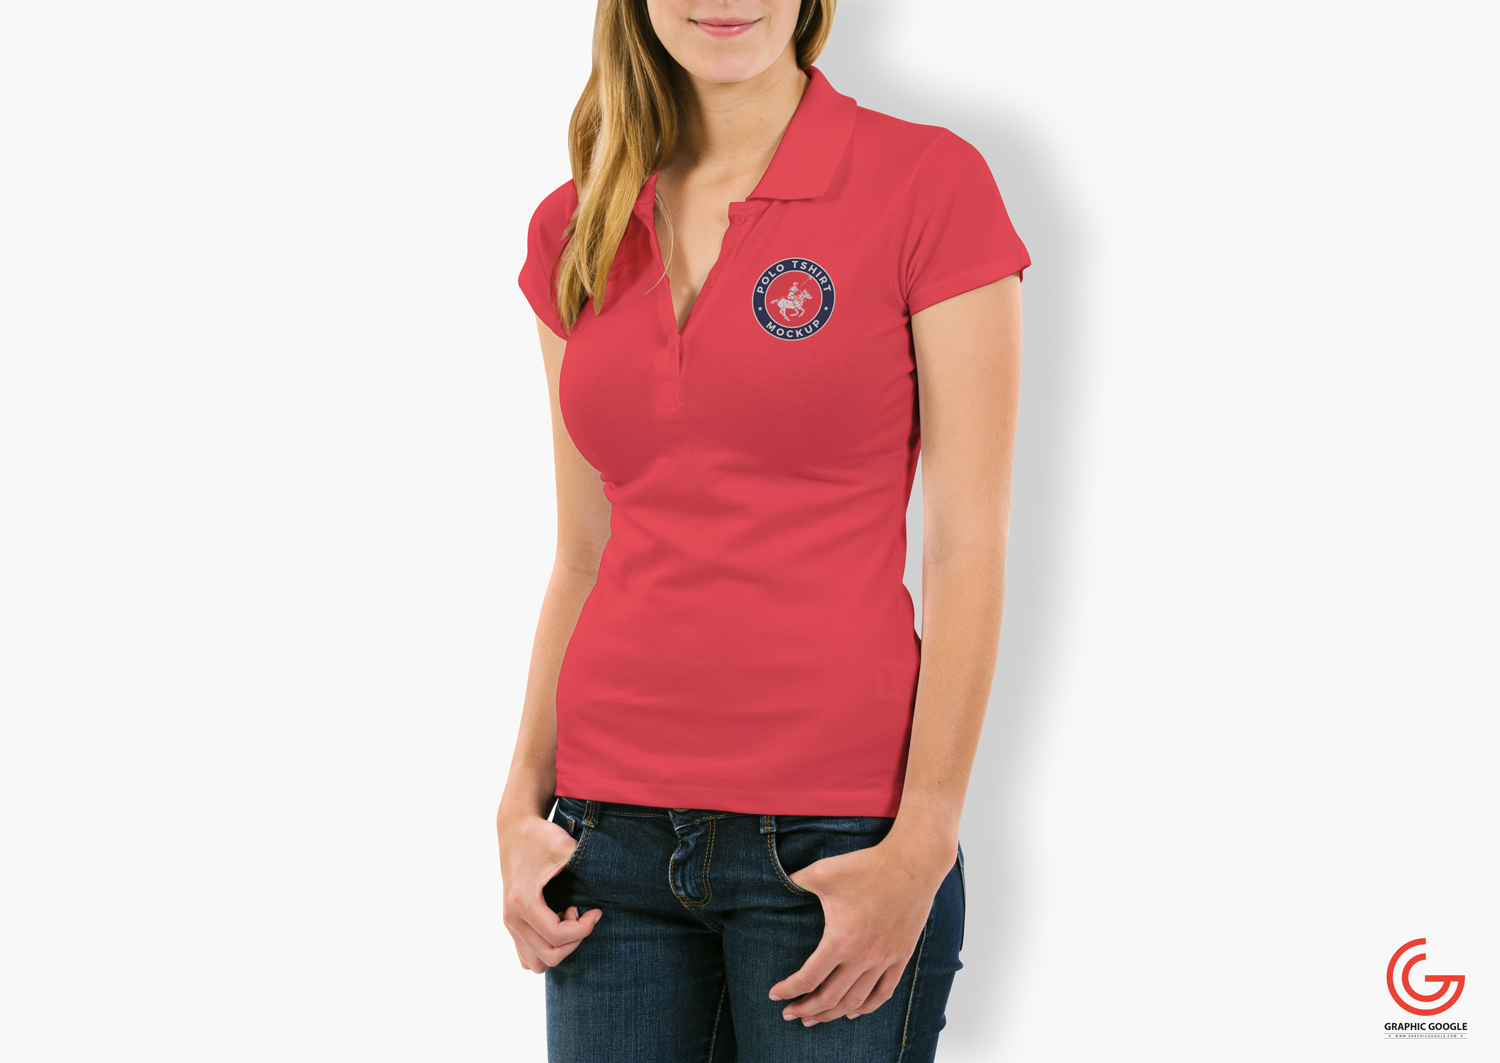 Free-Woman-With-Polo-T-Shirt-Mockup-PSD-1